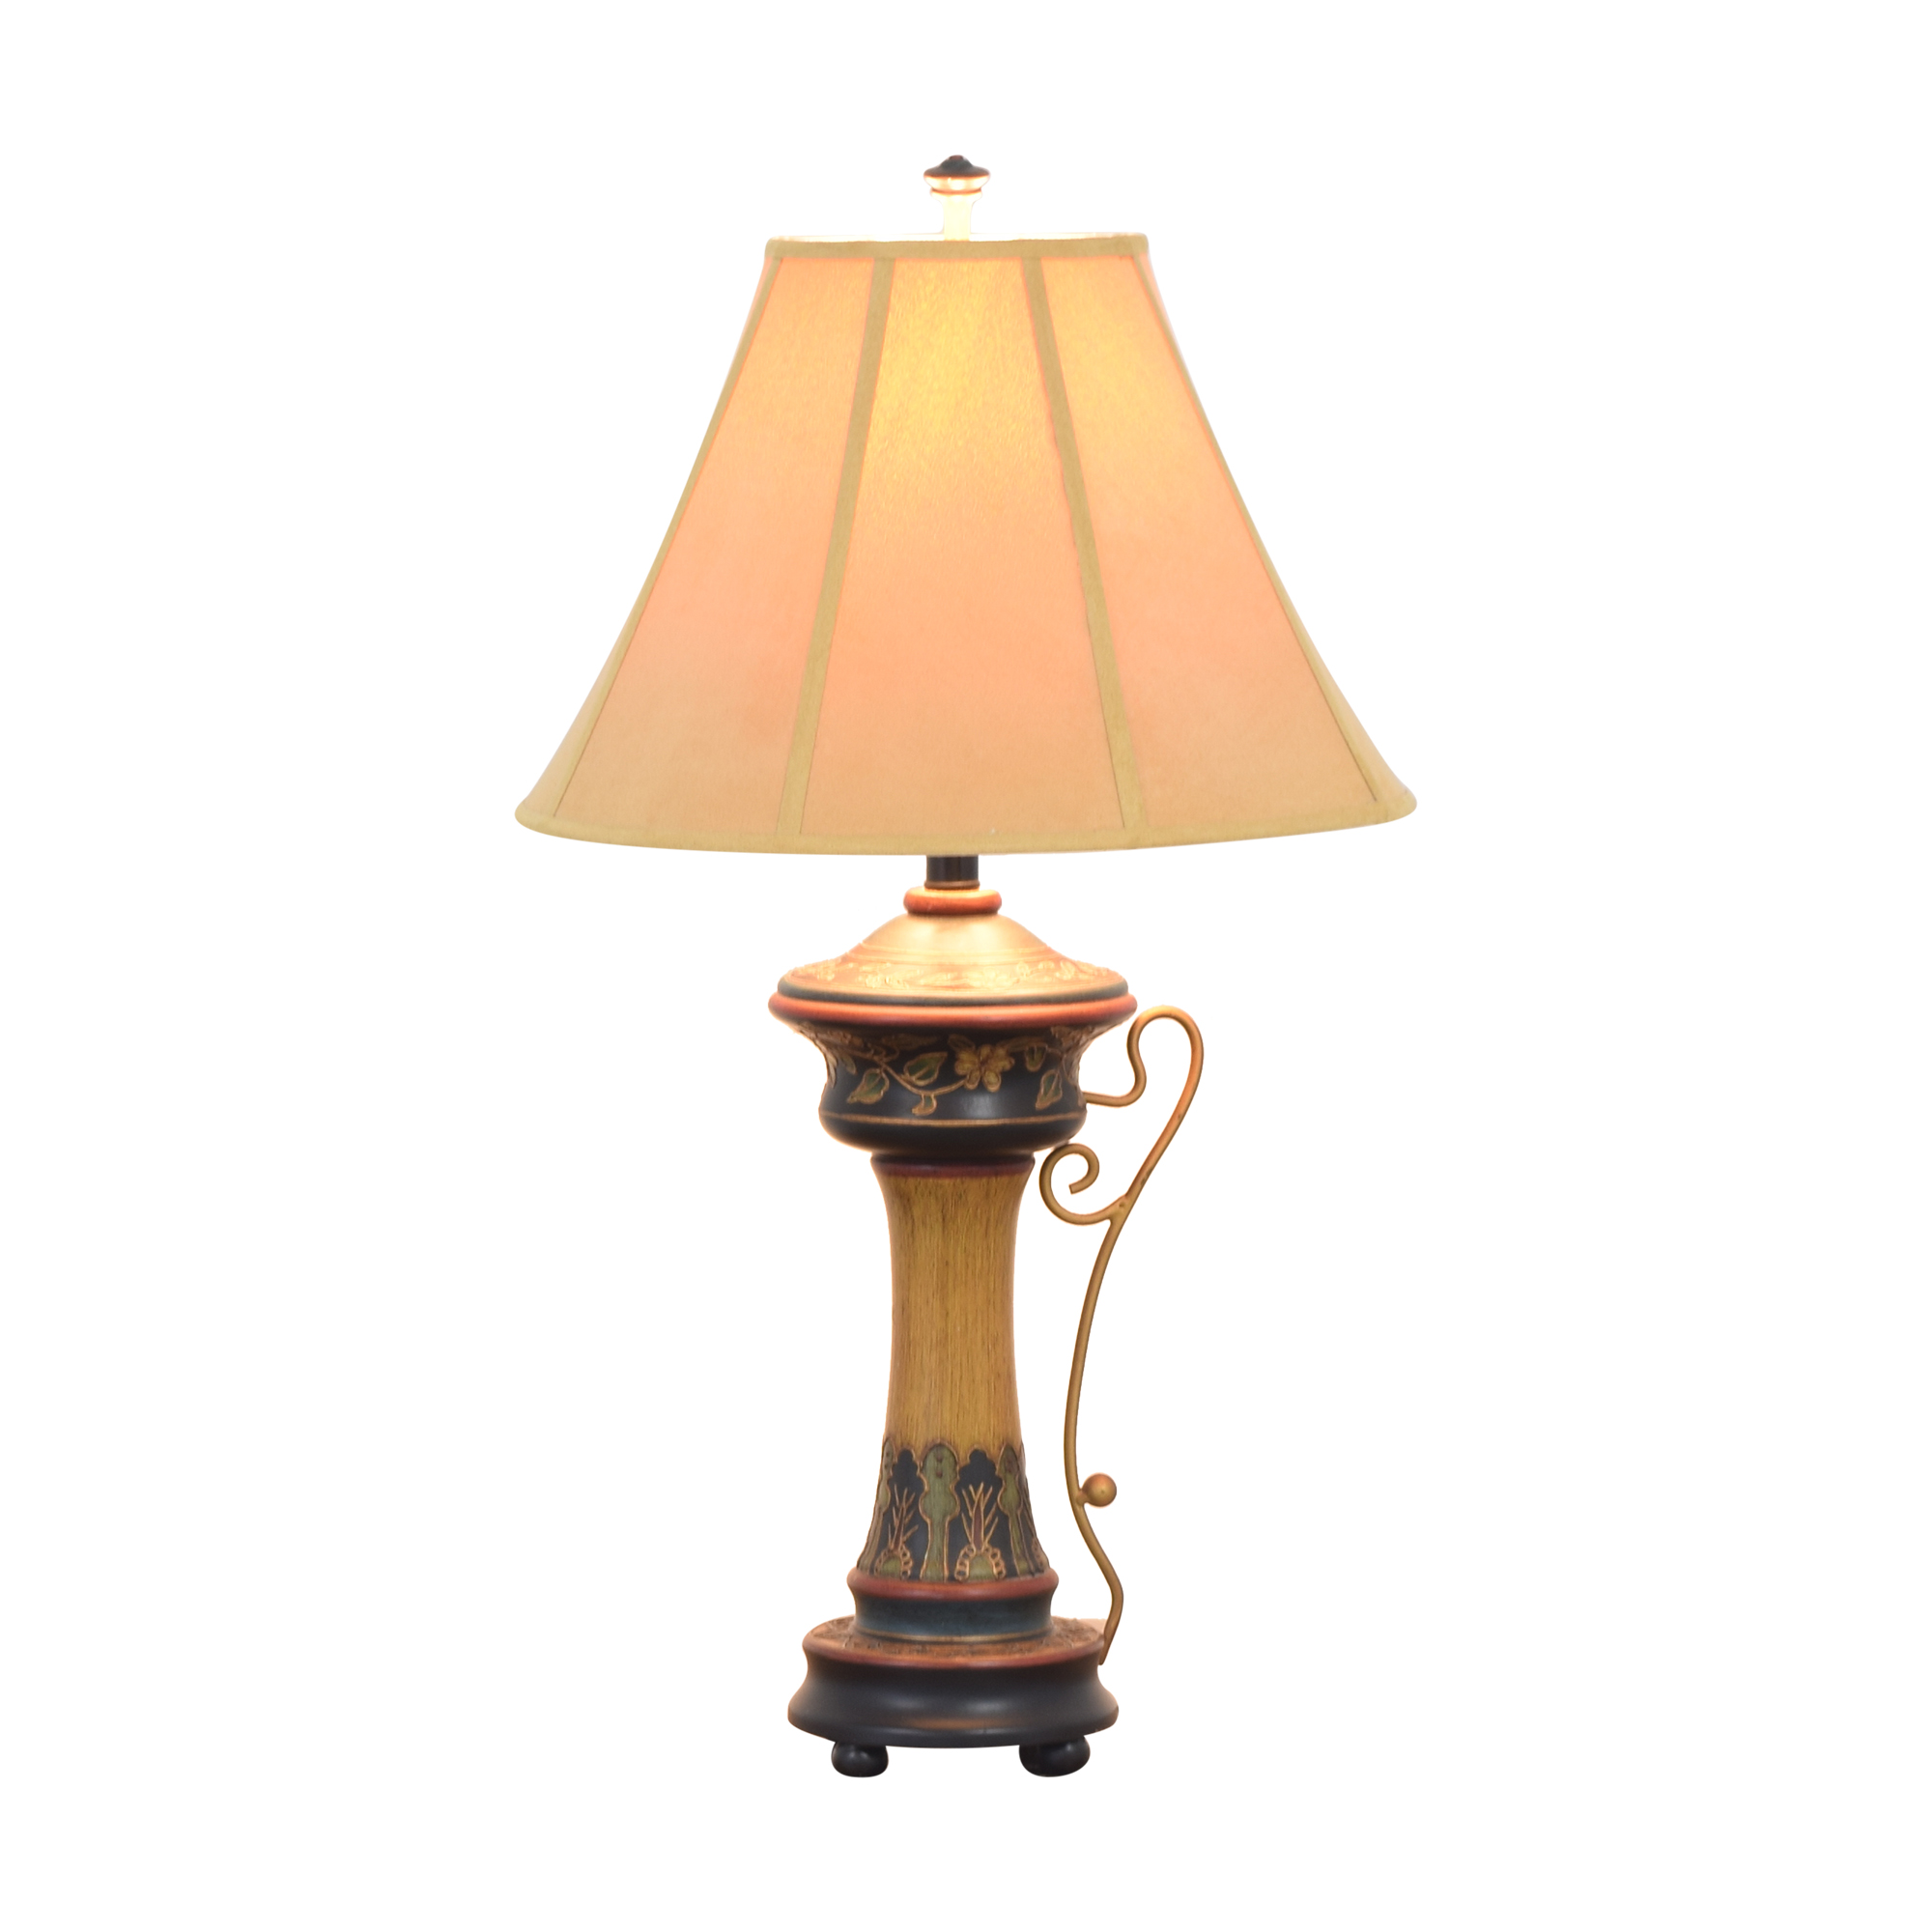 Vintage Table lamp / Lamps